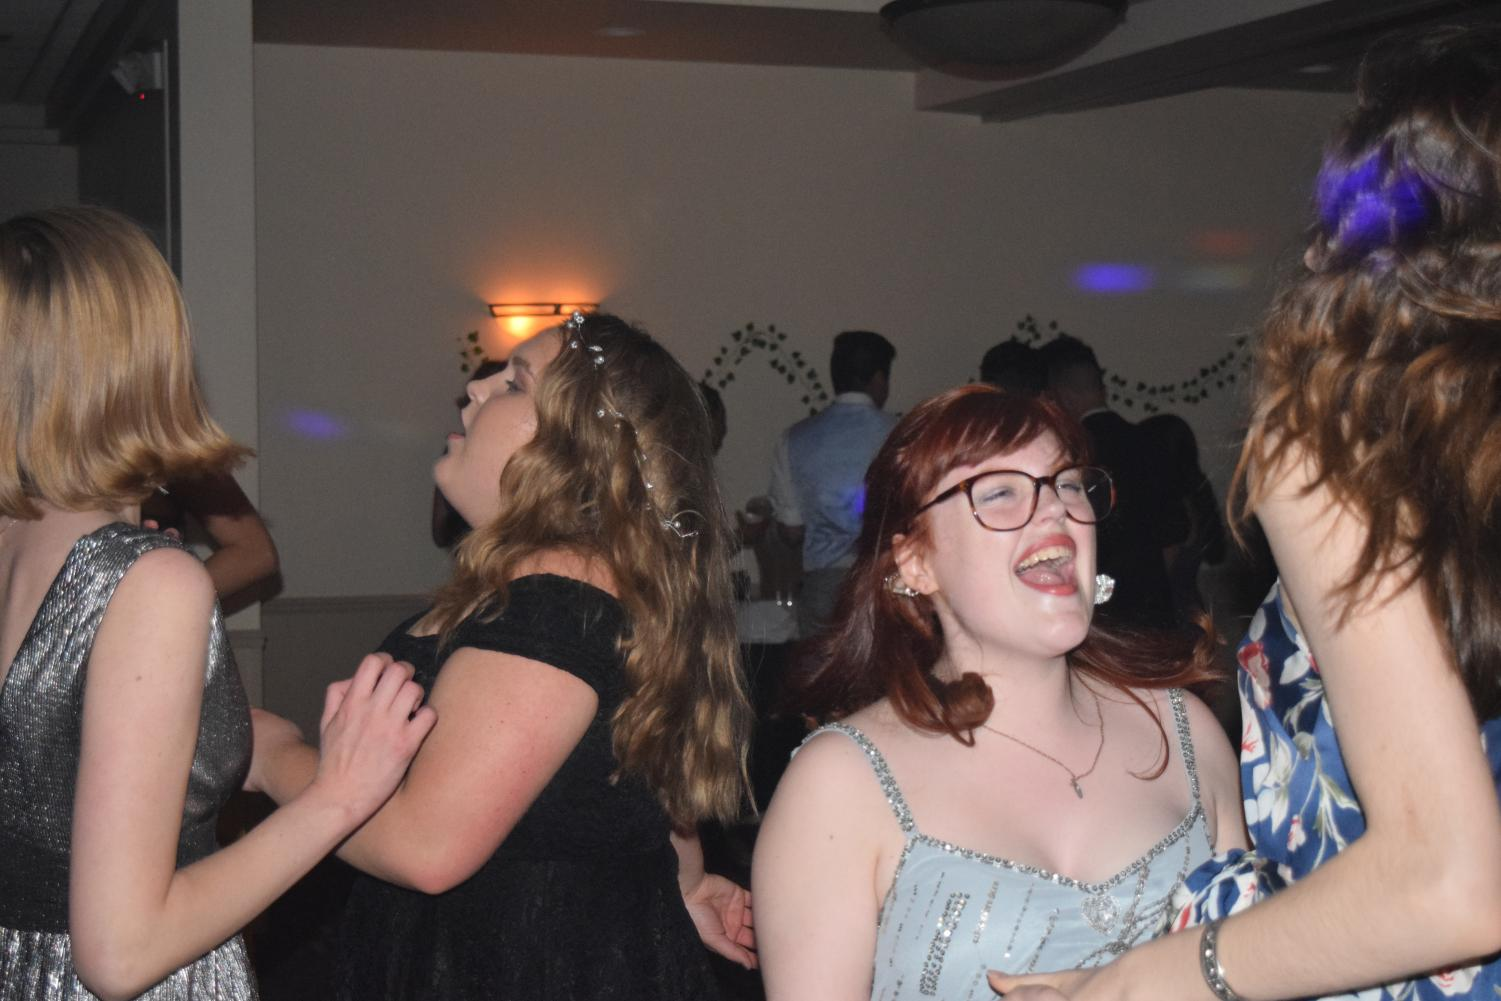 Bree+Linton+and+others+sing+while+dancing+at+prom+on+May+4th%2C+2018.